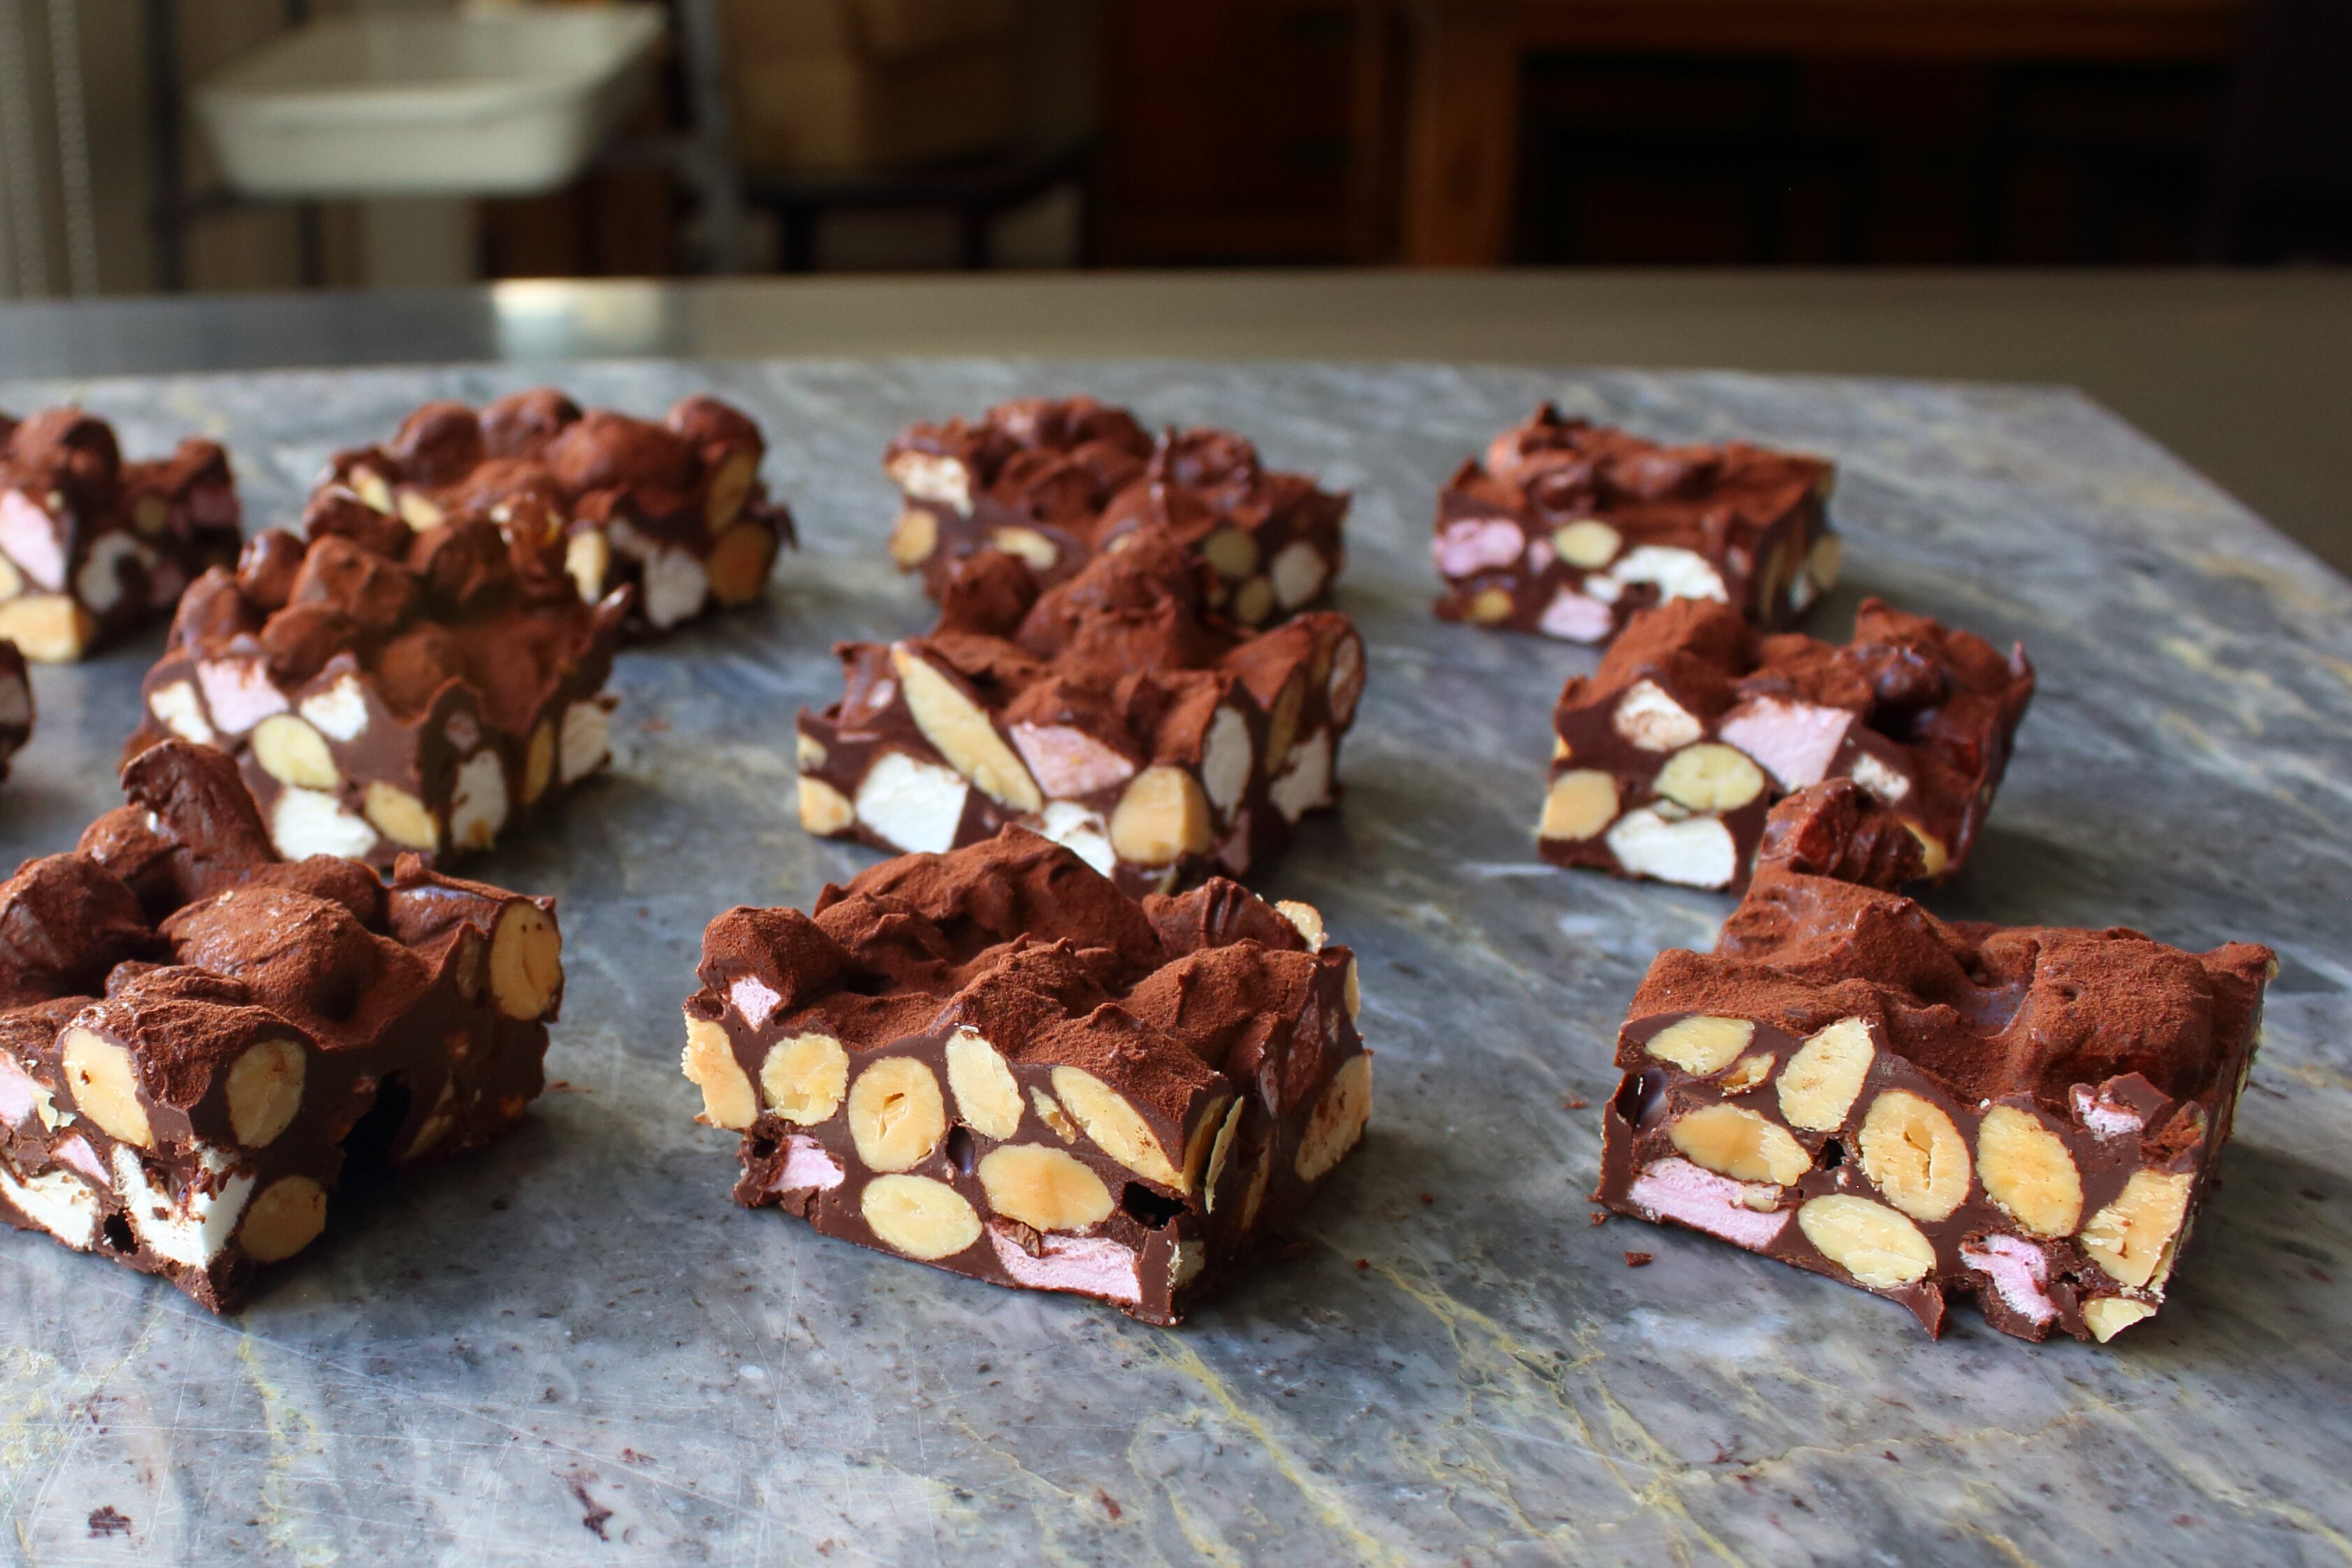 chef johns rocky road